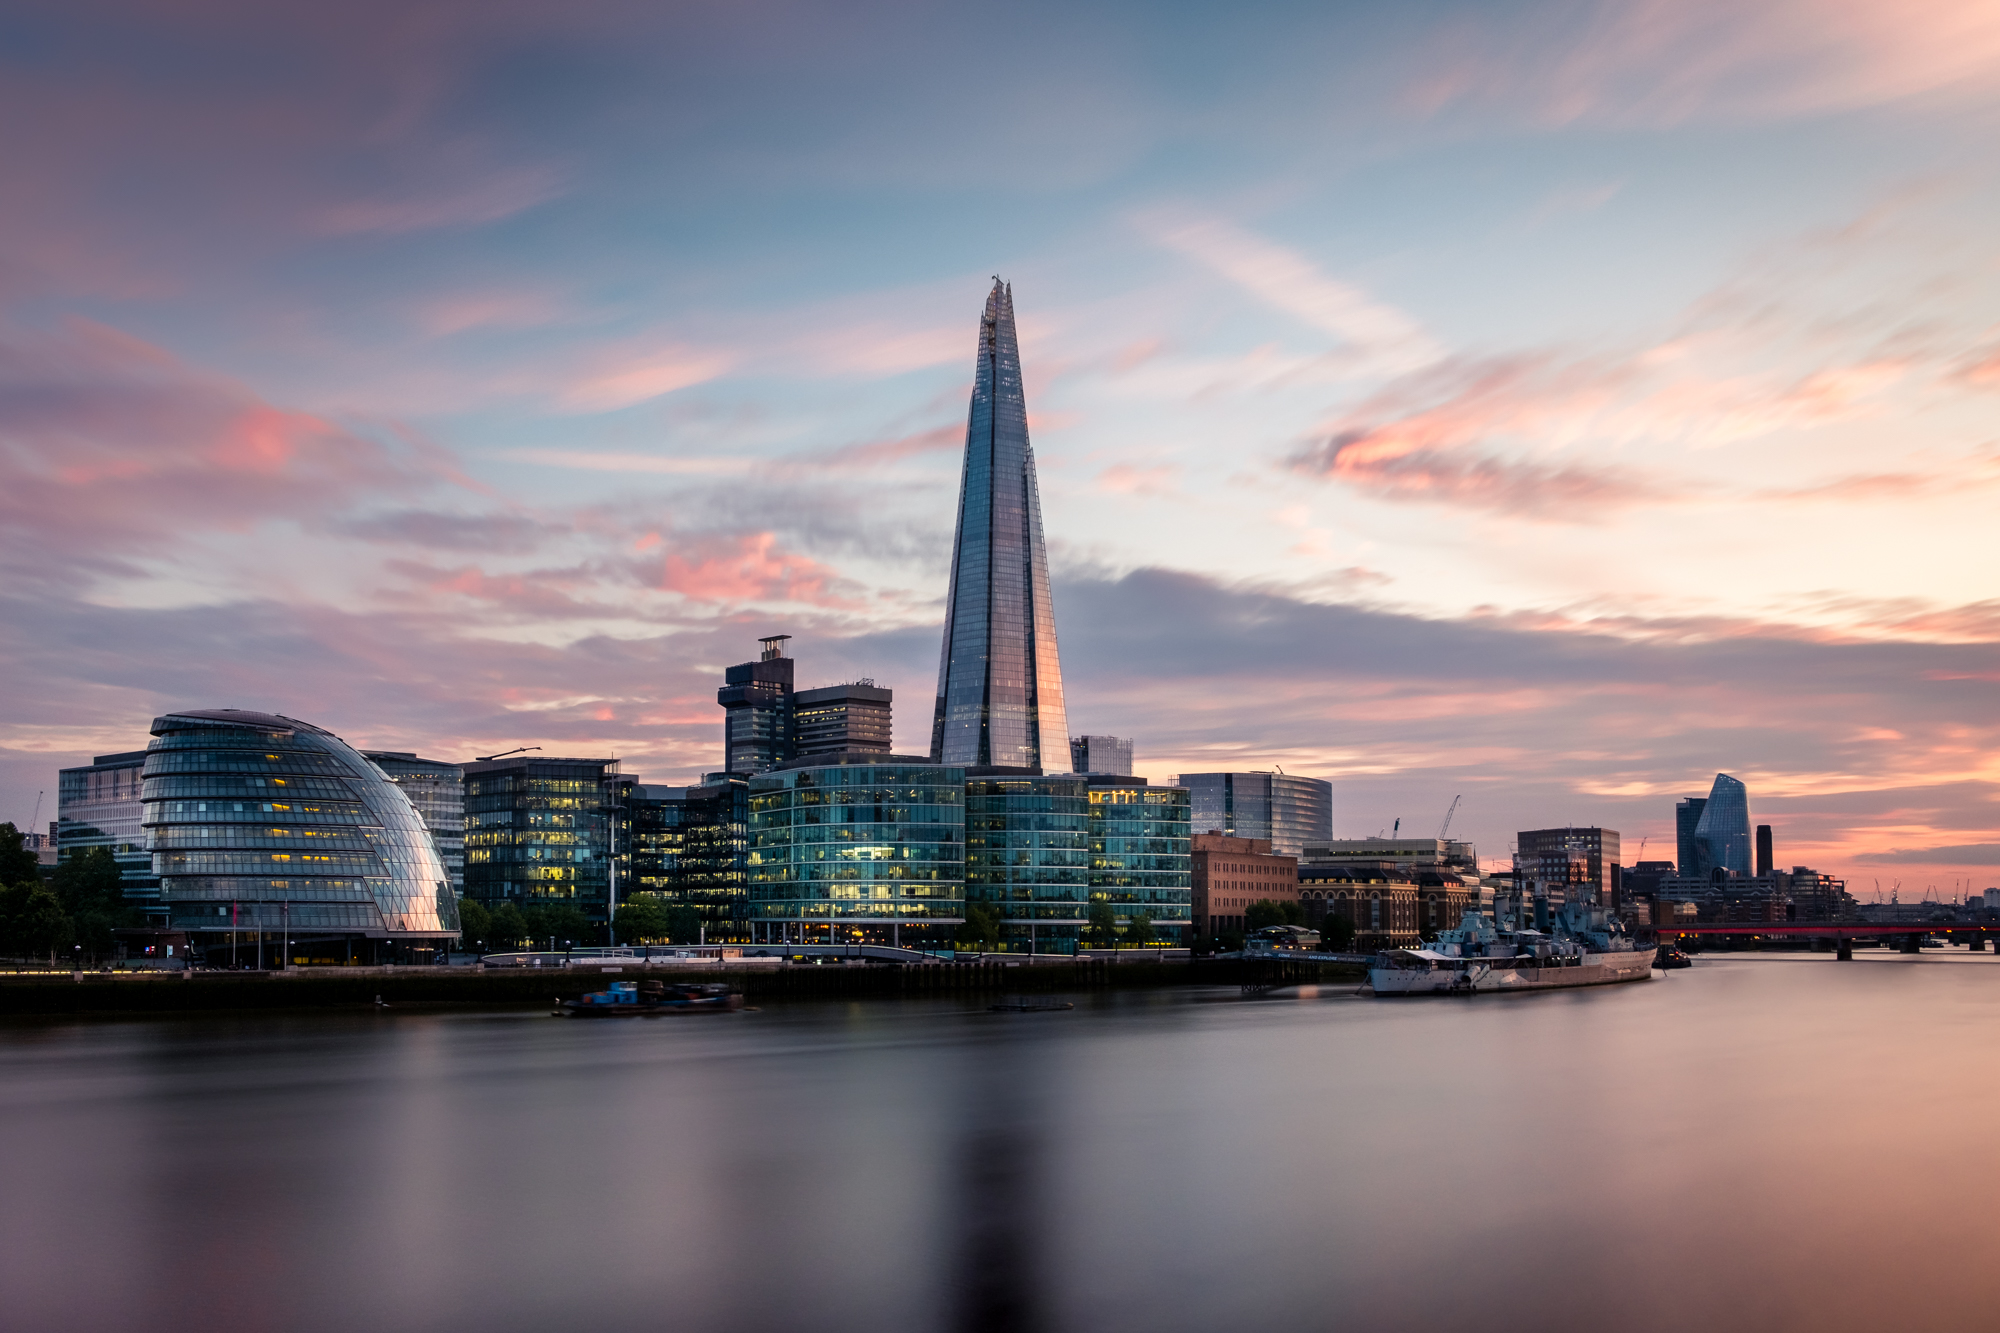 The Shard at Sunset | Fujifilm XT2 | XF18-55mm | 20mm | 131 seconds | f/10 | ISO200